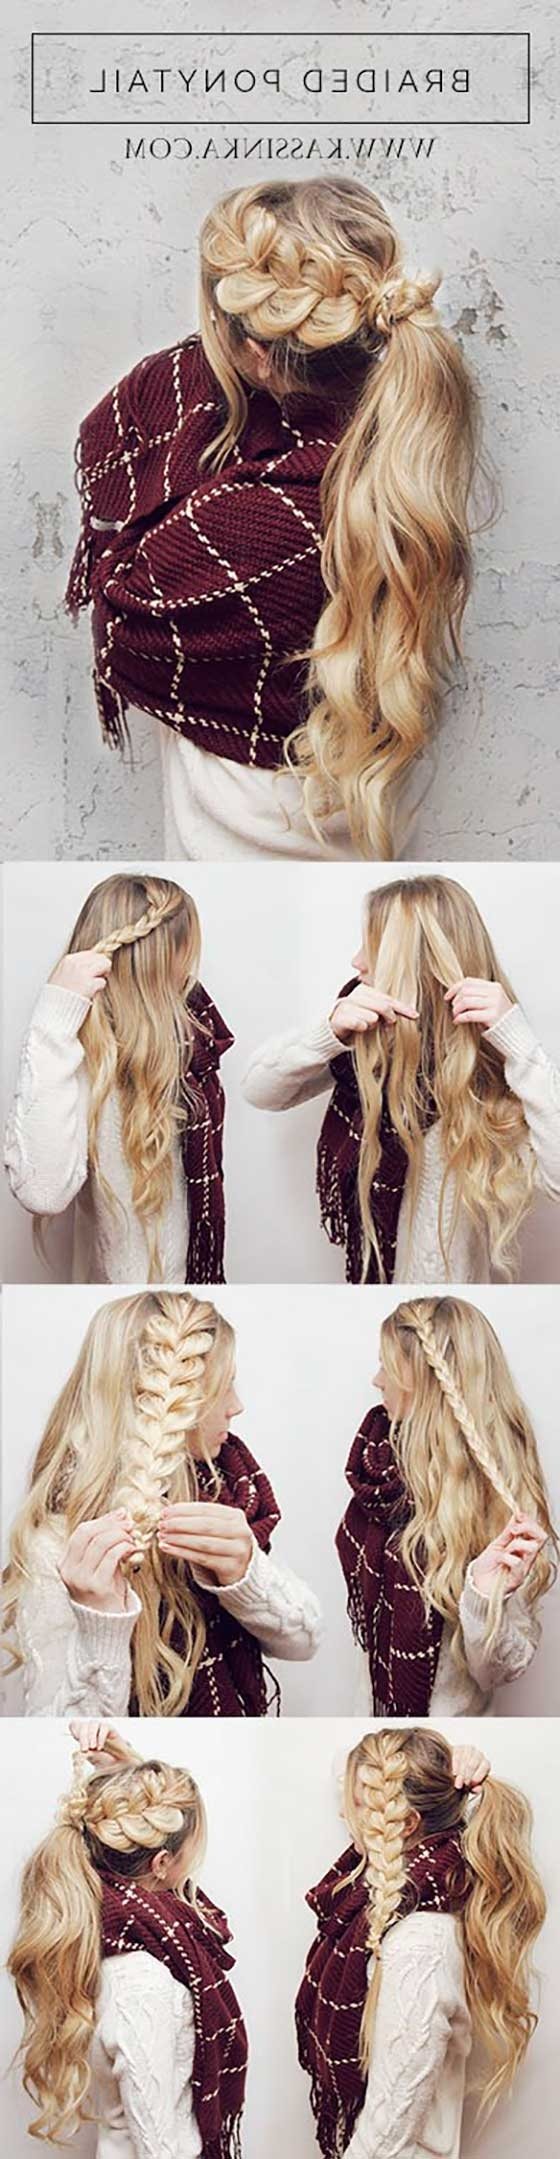 40 Braided Hairstyles For Long Hair Intended For Well Known Ponytail Braids With Quirky Hair Accessory (View 2 of 15)